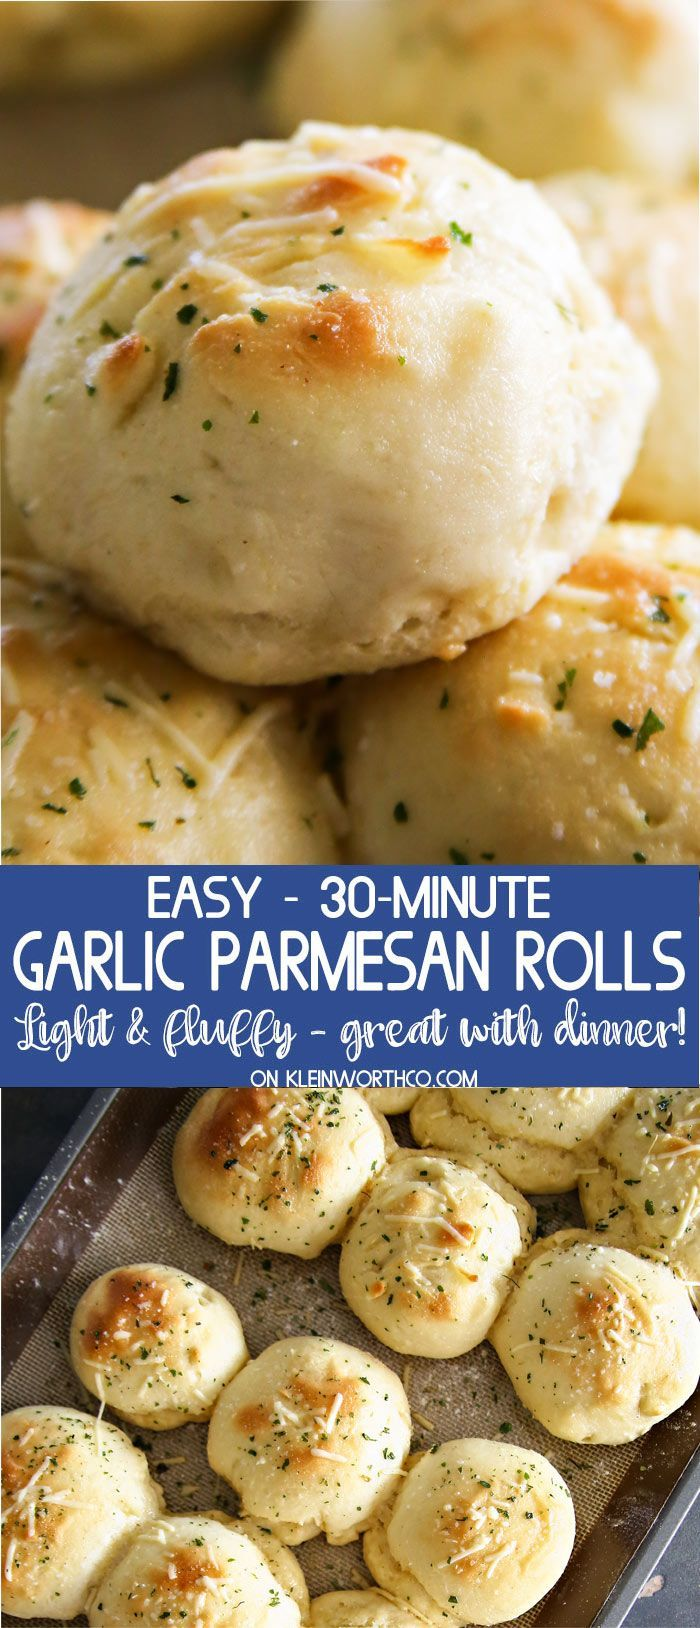 30-Minute Garlic Parmesan Dinner Rolls, the perfect bread recipe to serve with any meal. Great for holidays, so simple to make. Cheesy, garlicky goodness! via @KleinworthCo